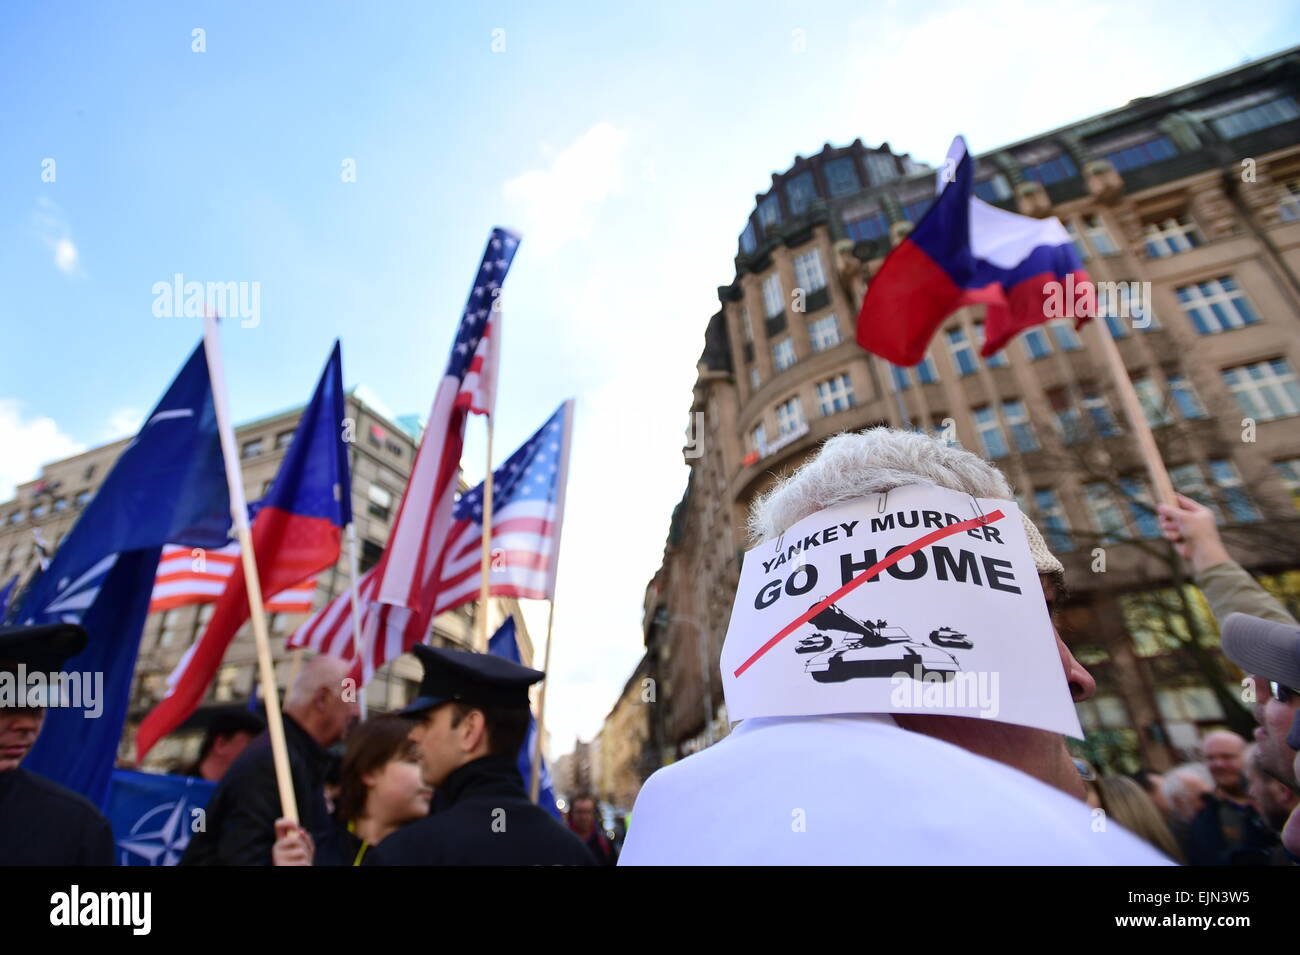 Several hundred people - opponents and supporters of the U.S. army convoy crossing Czech territory met to express - Stock Image